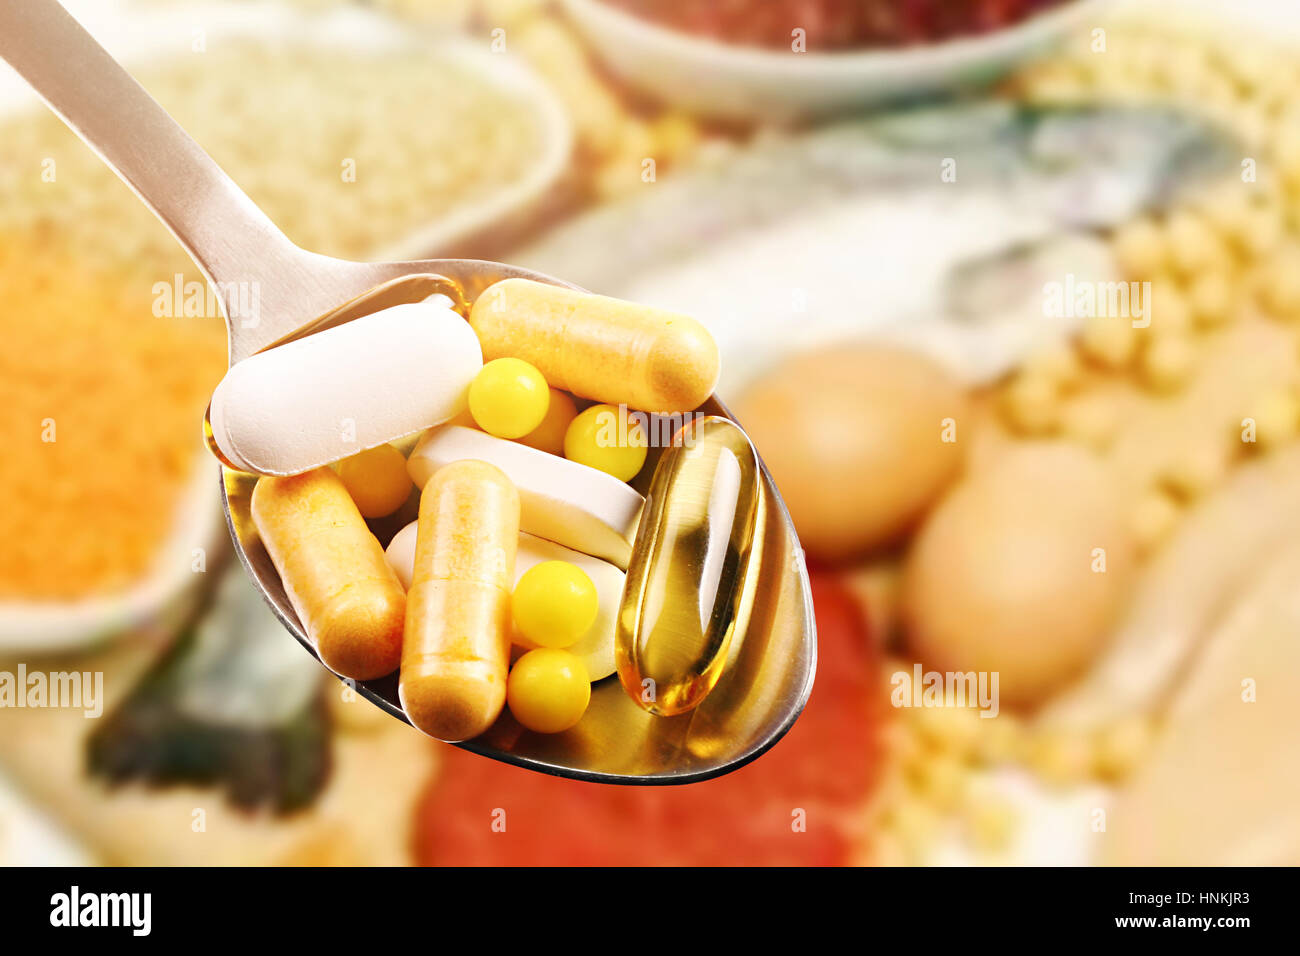 dietary supplements in spoon on protein food background - Stock Image